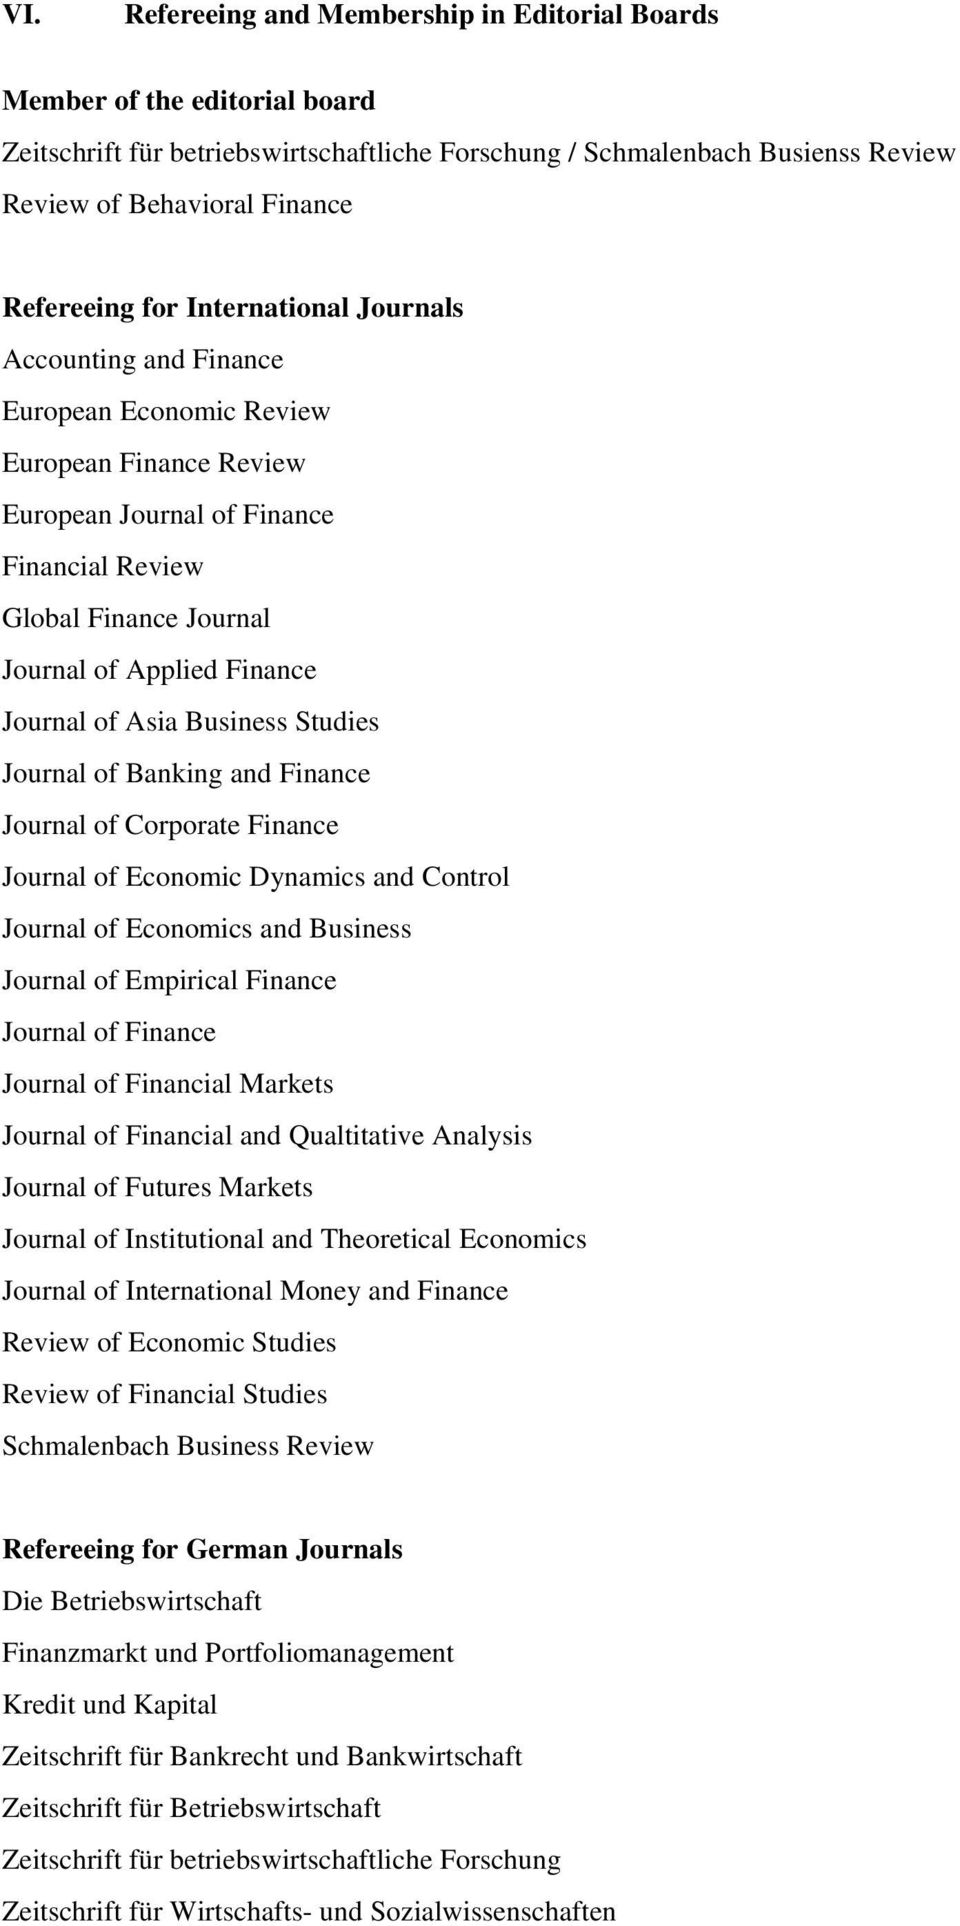 Finance Journal of Asia Business Studies Journal of Banking and Finance Journal of Corporate Finance Journal of Economic Dynamics and Control Journal of Economics and Business Journal of Empirical